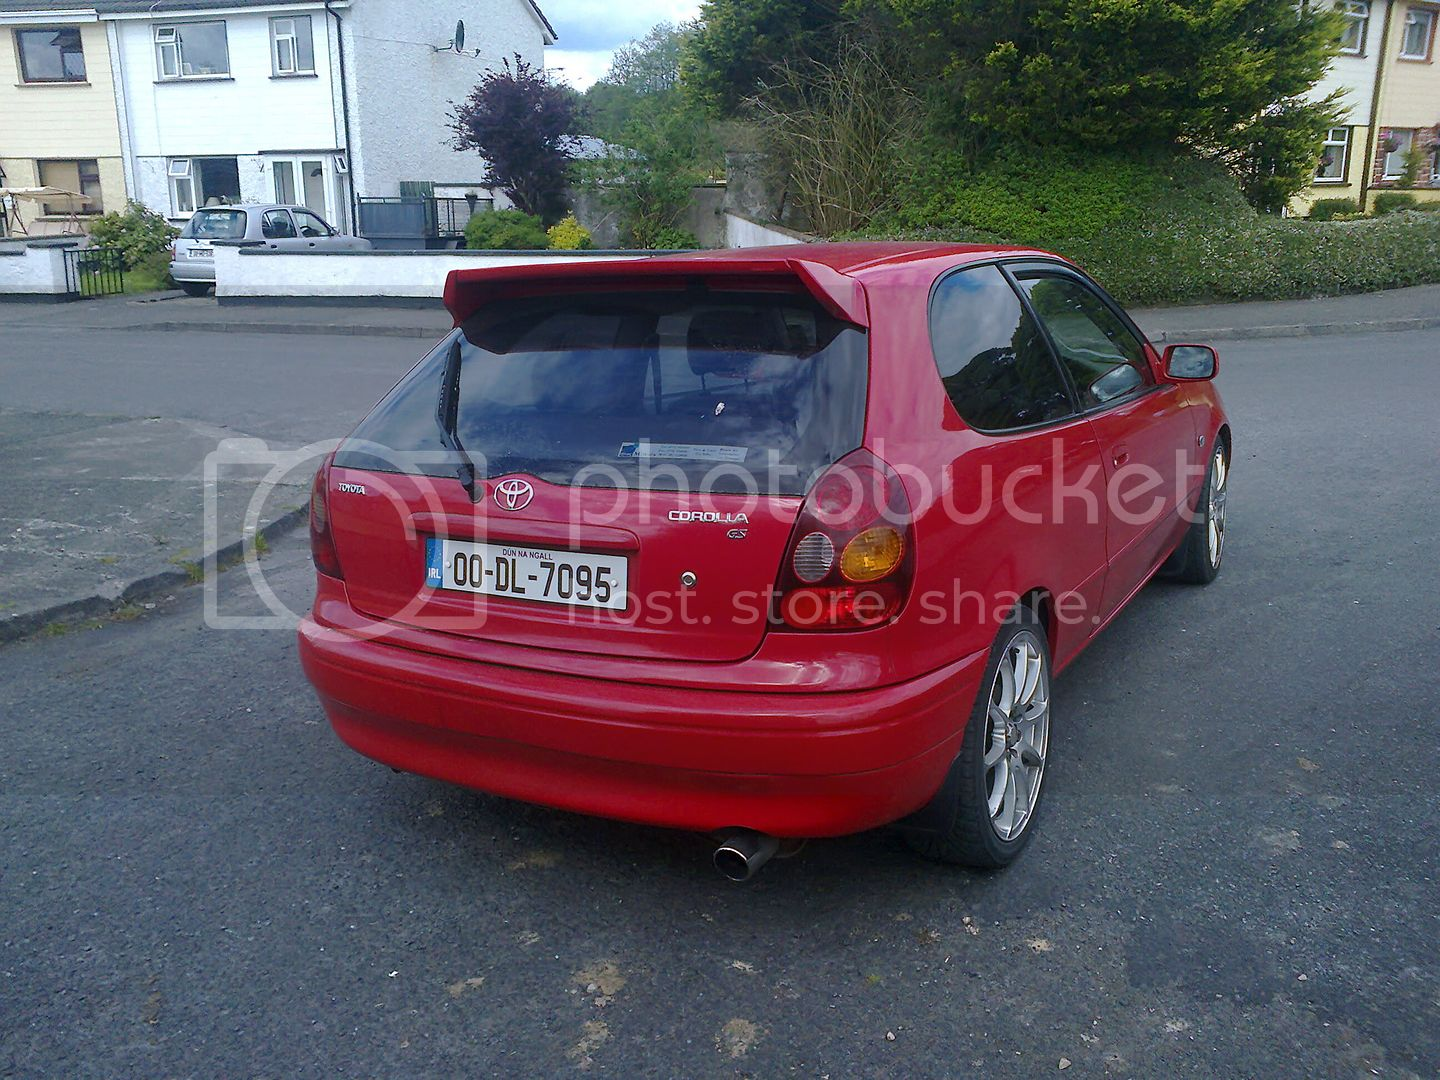 My new facelift e11 corolla hatch Photo0566